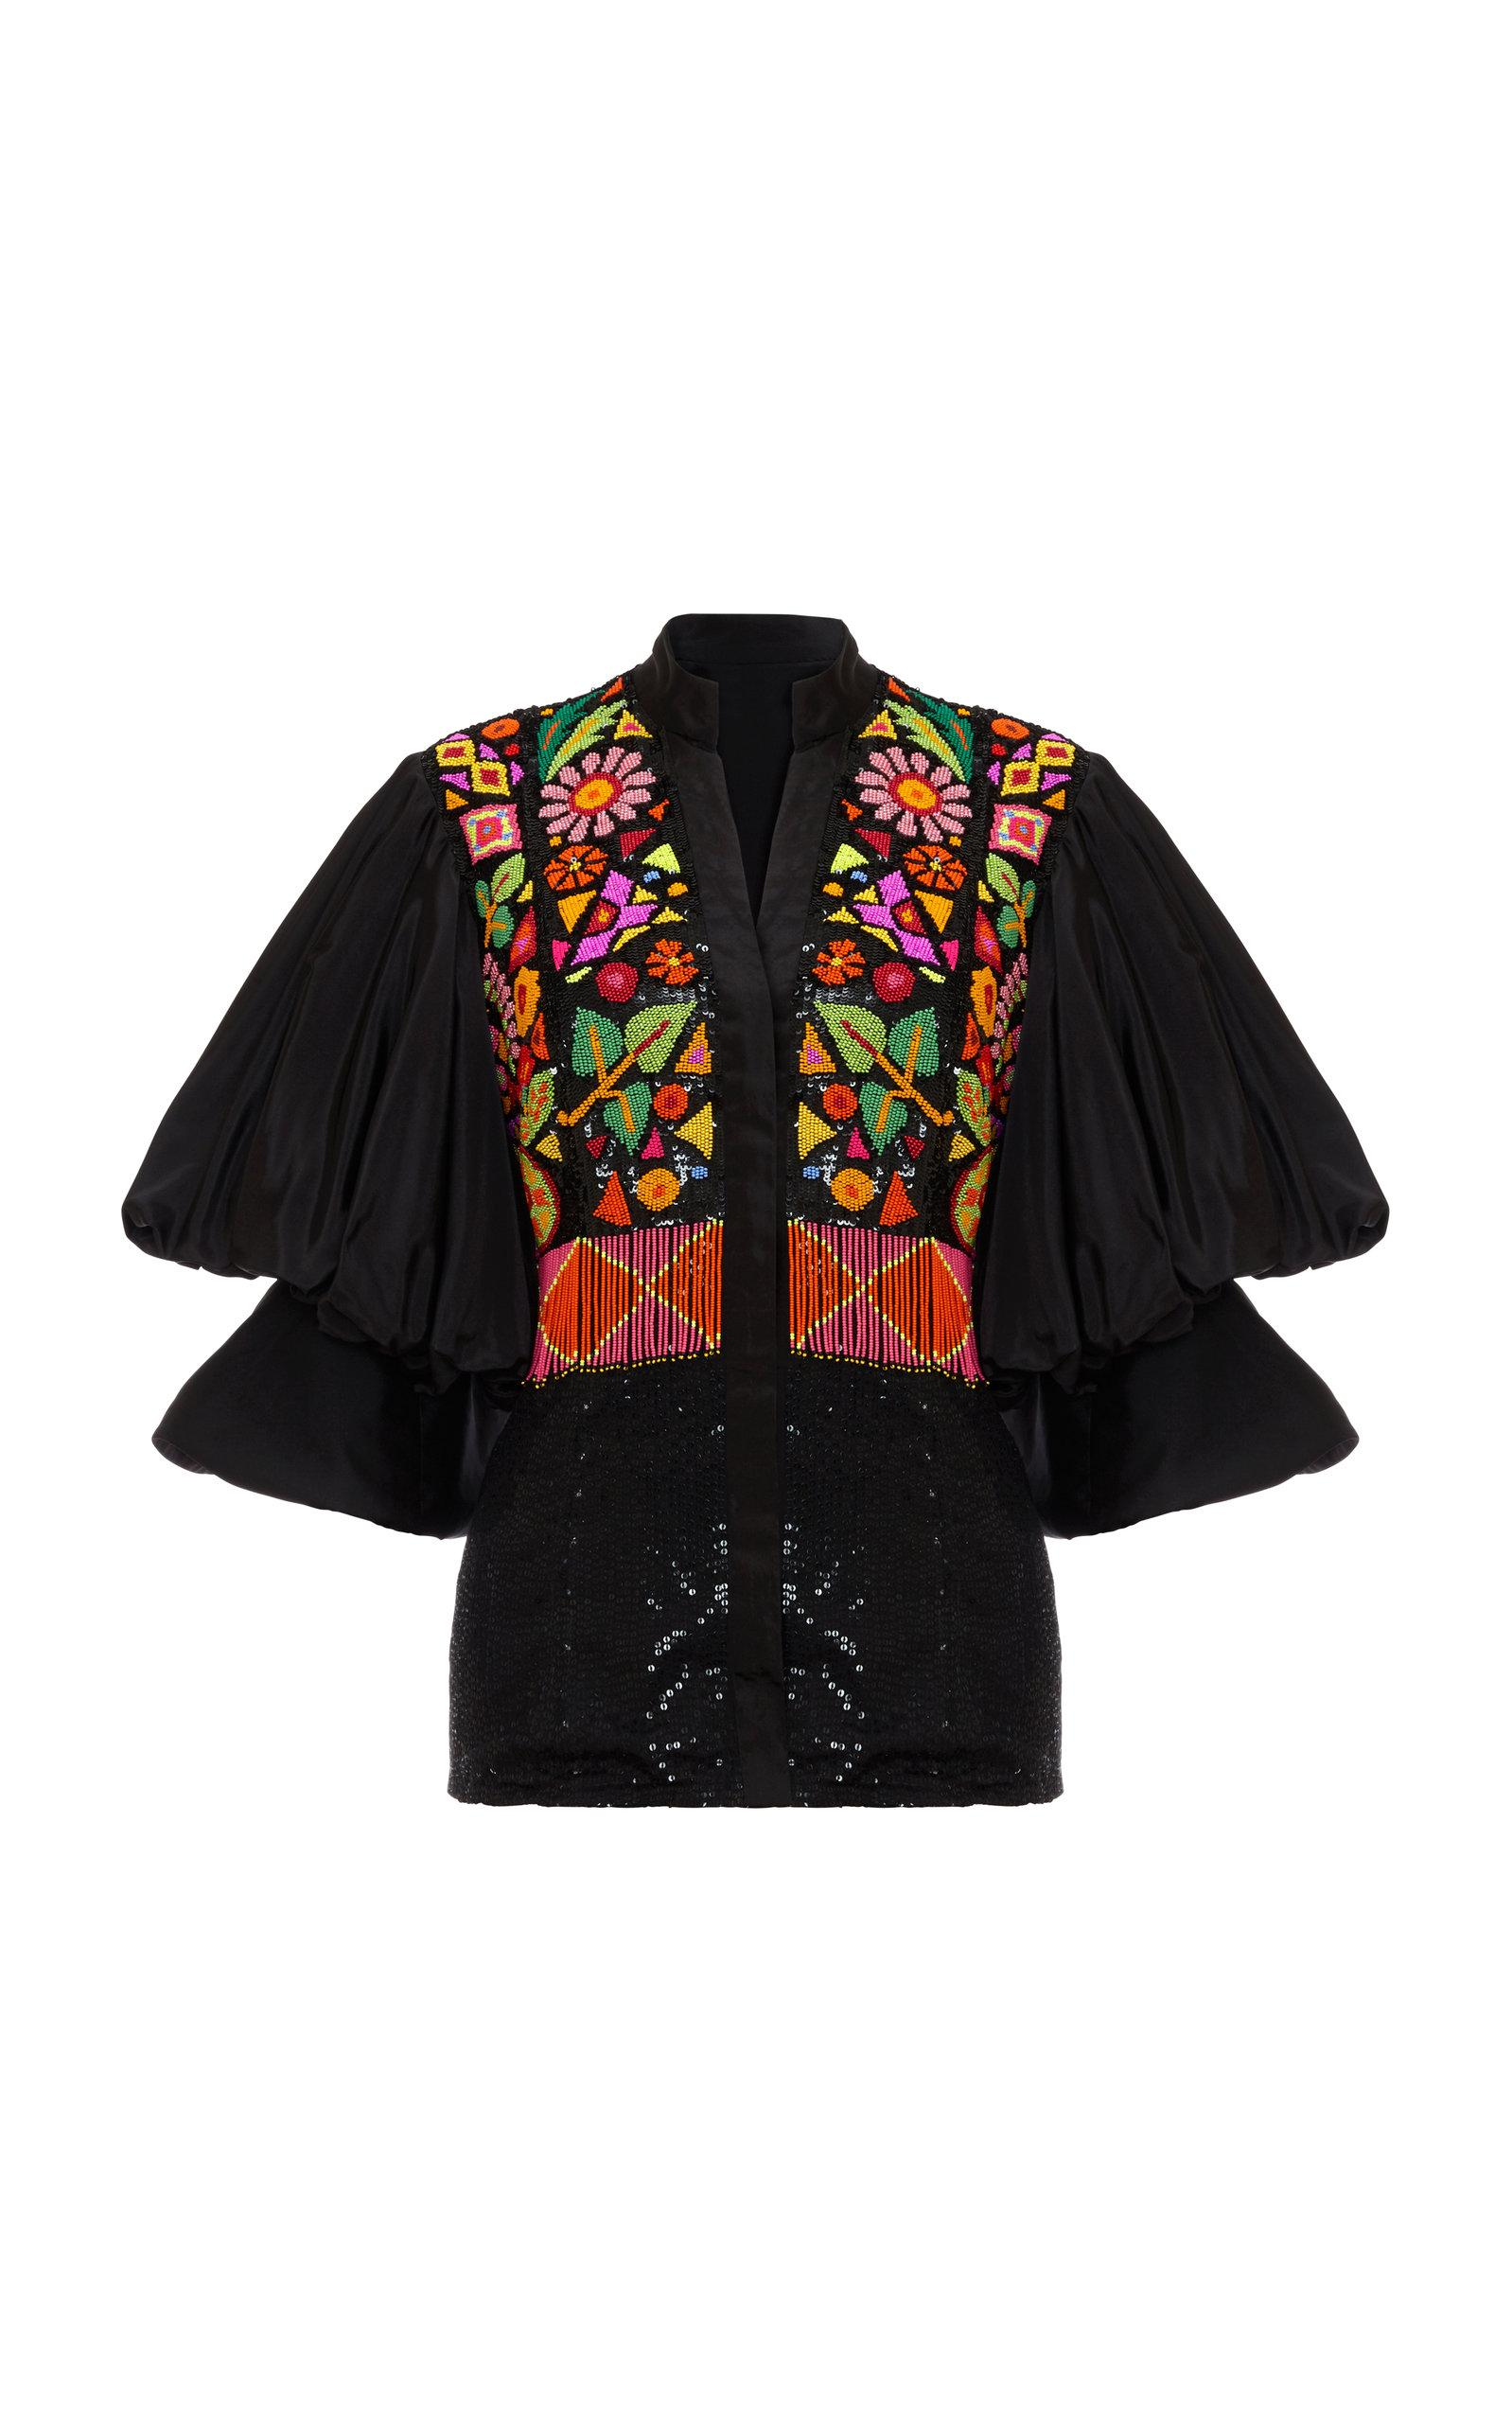 Khosla Jani Beaded Poof Sleeve Blouse In Multi